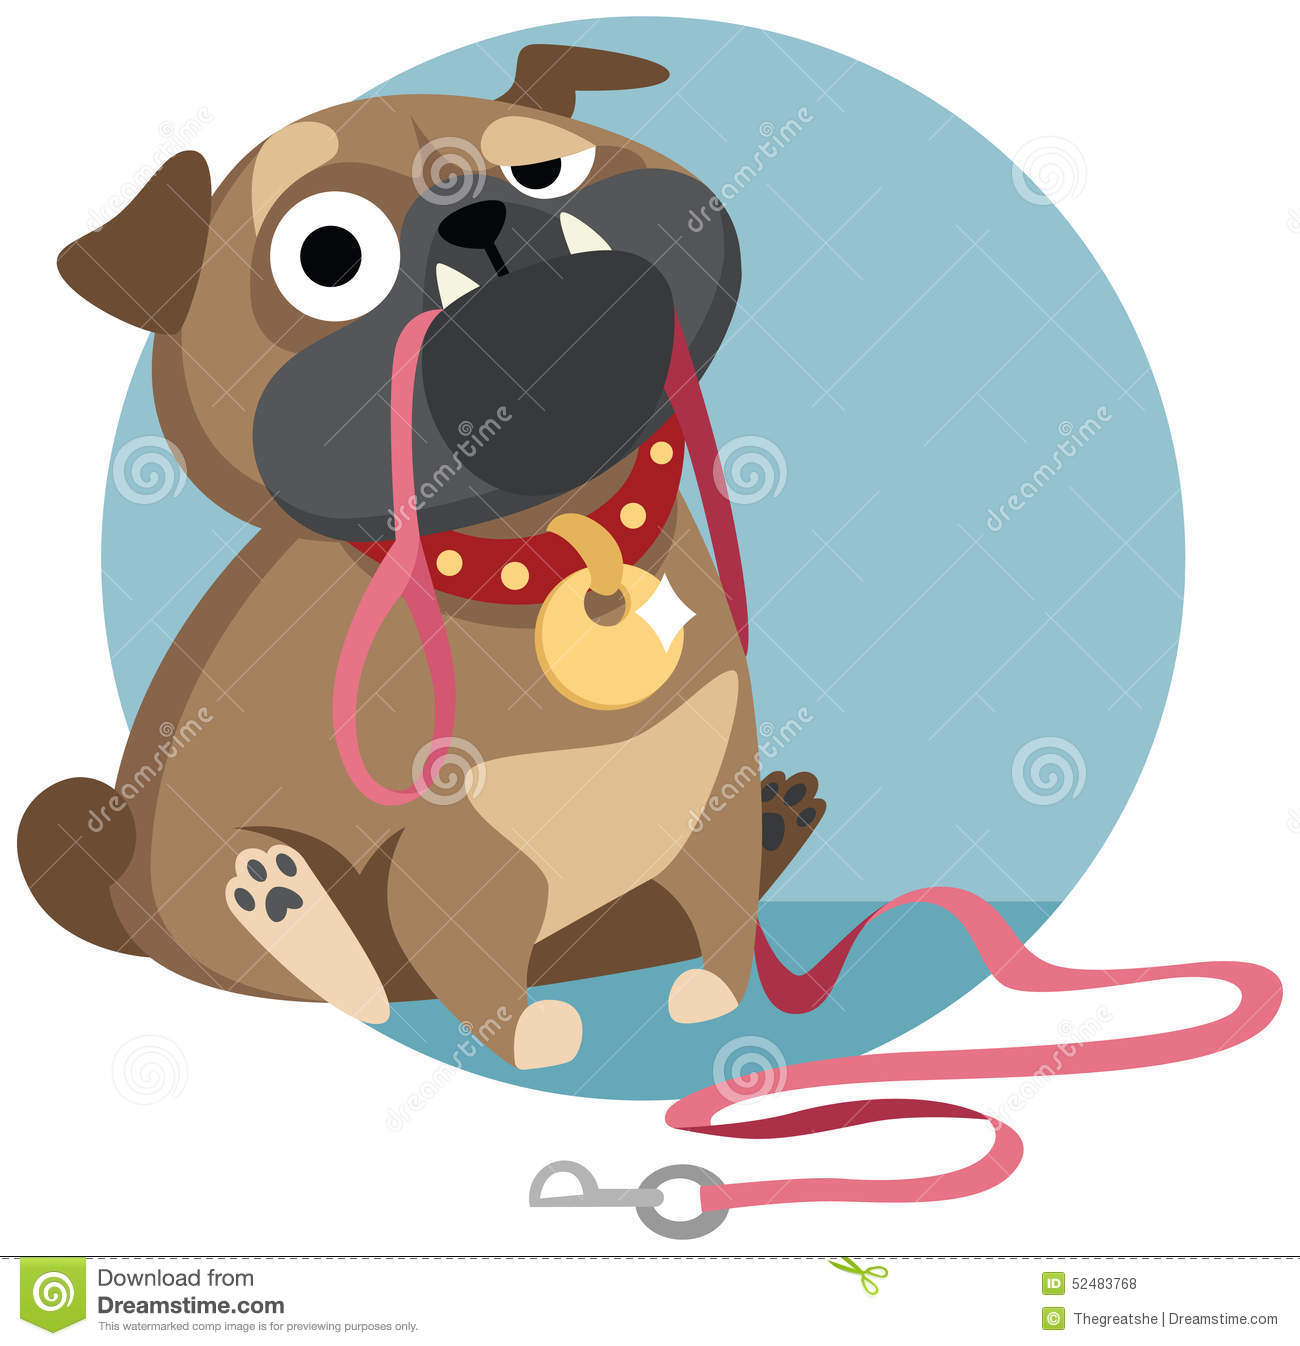 Cartoon Character Design Vector : Pug with dog lead asking for a walk stock vector image